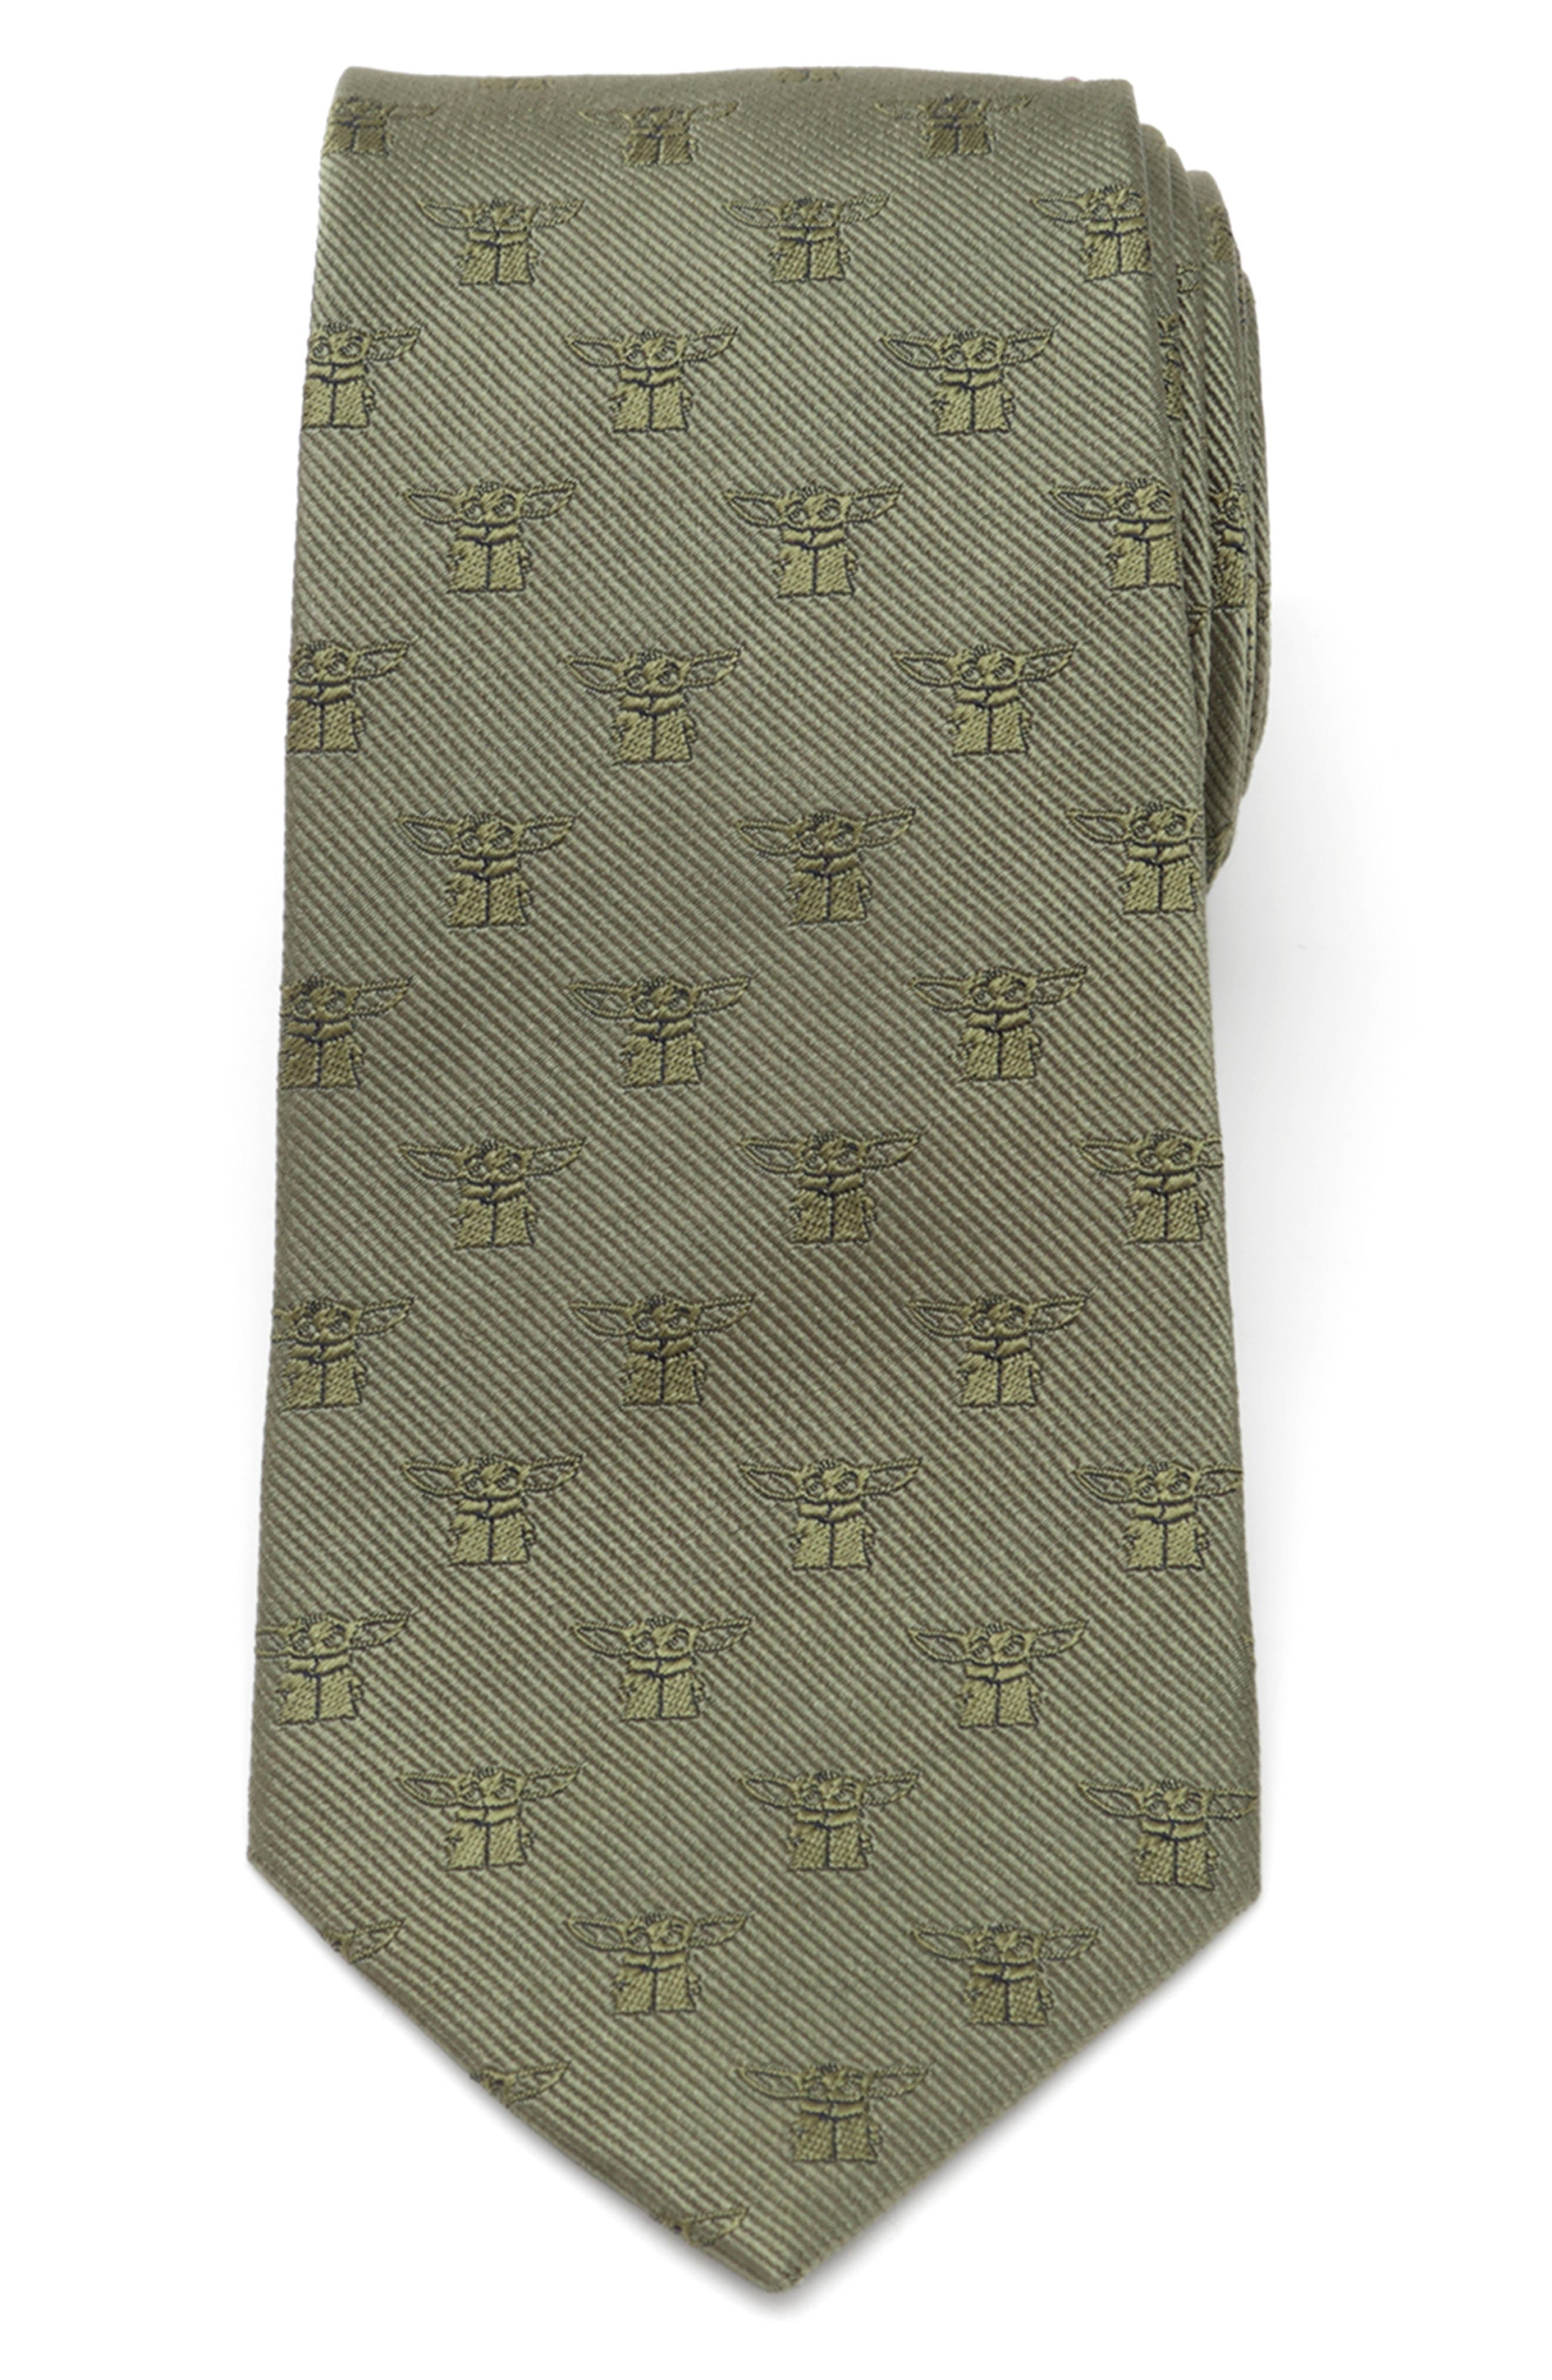 Crafted from Yoda-green silk and patterned in a ridiculously cute \\\'the Child\\\' grid, this tie adds a subtly playful touch to your formal looks-we have spoken. Style Name: Cufflinks, Inc. Star Wars The Mandalorian The Child Silk Tie. Style Number: 6171461. Available in stores.